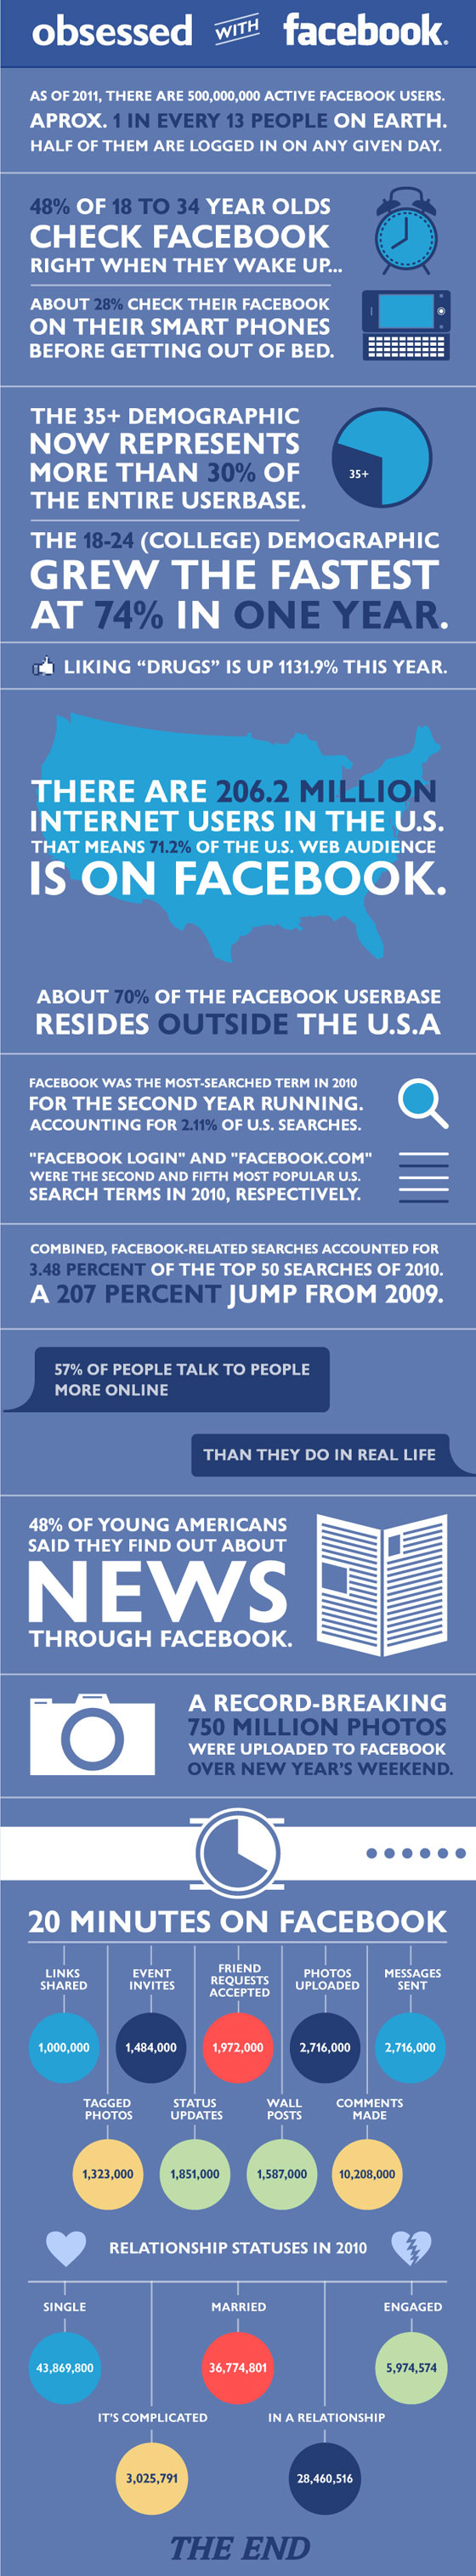 obsessed-with-facebook 50 Best Infographics Designs Inspirations